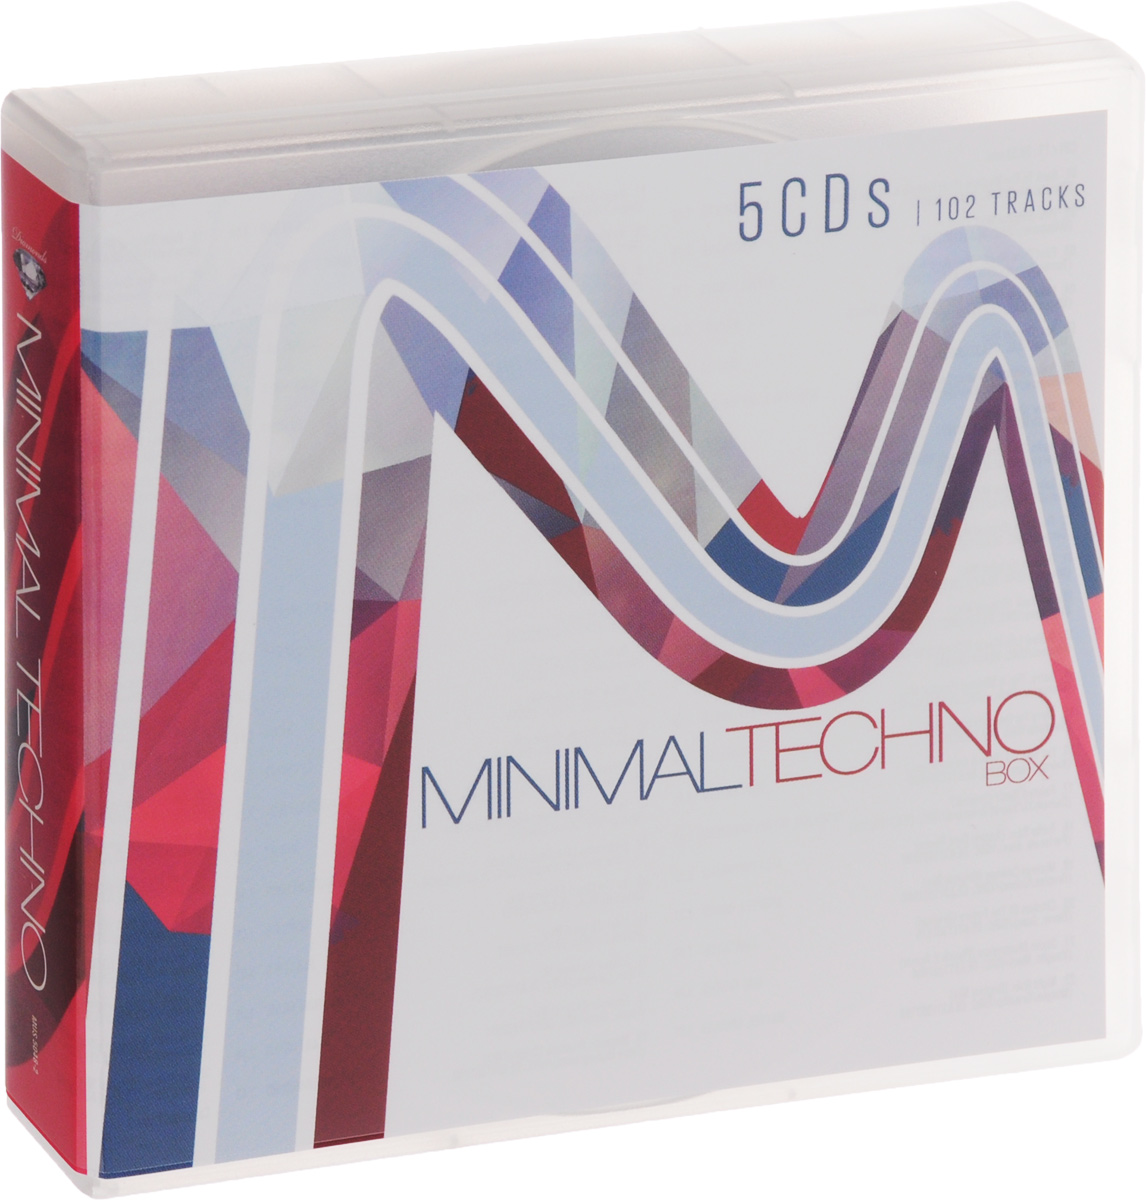 Minimal Techno Box (5 CD)